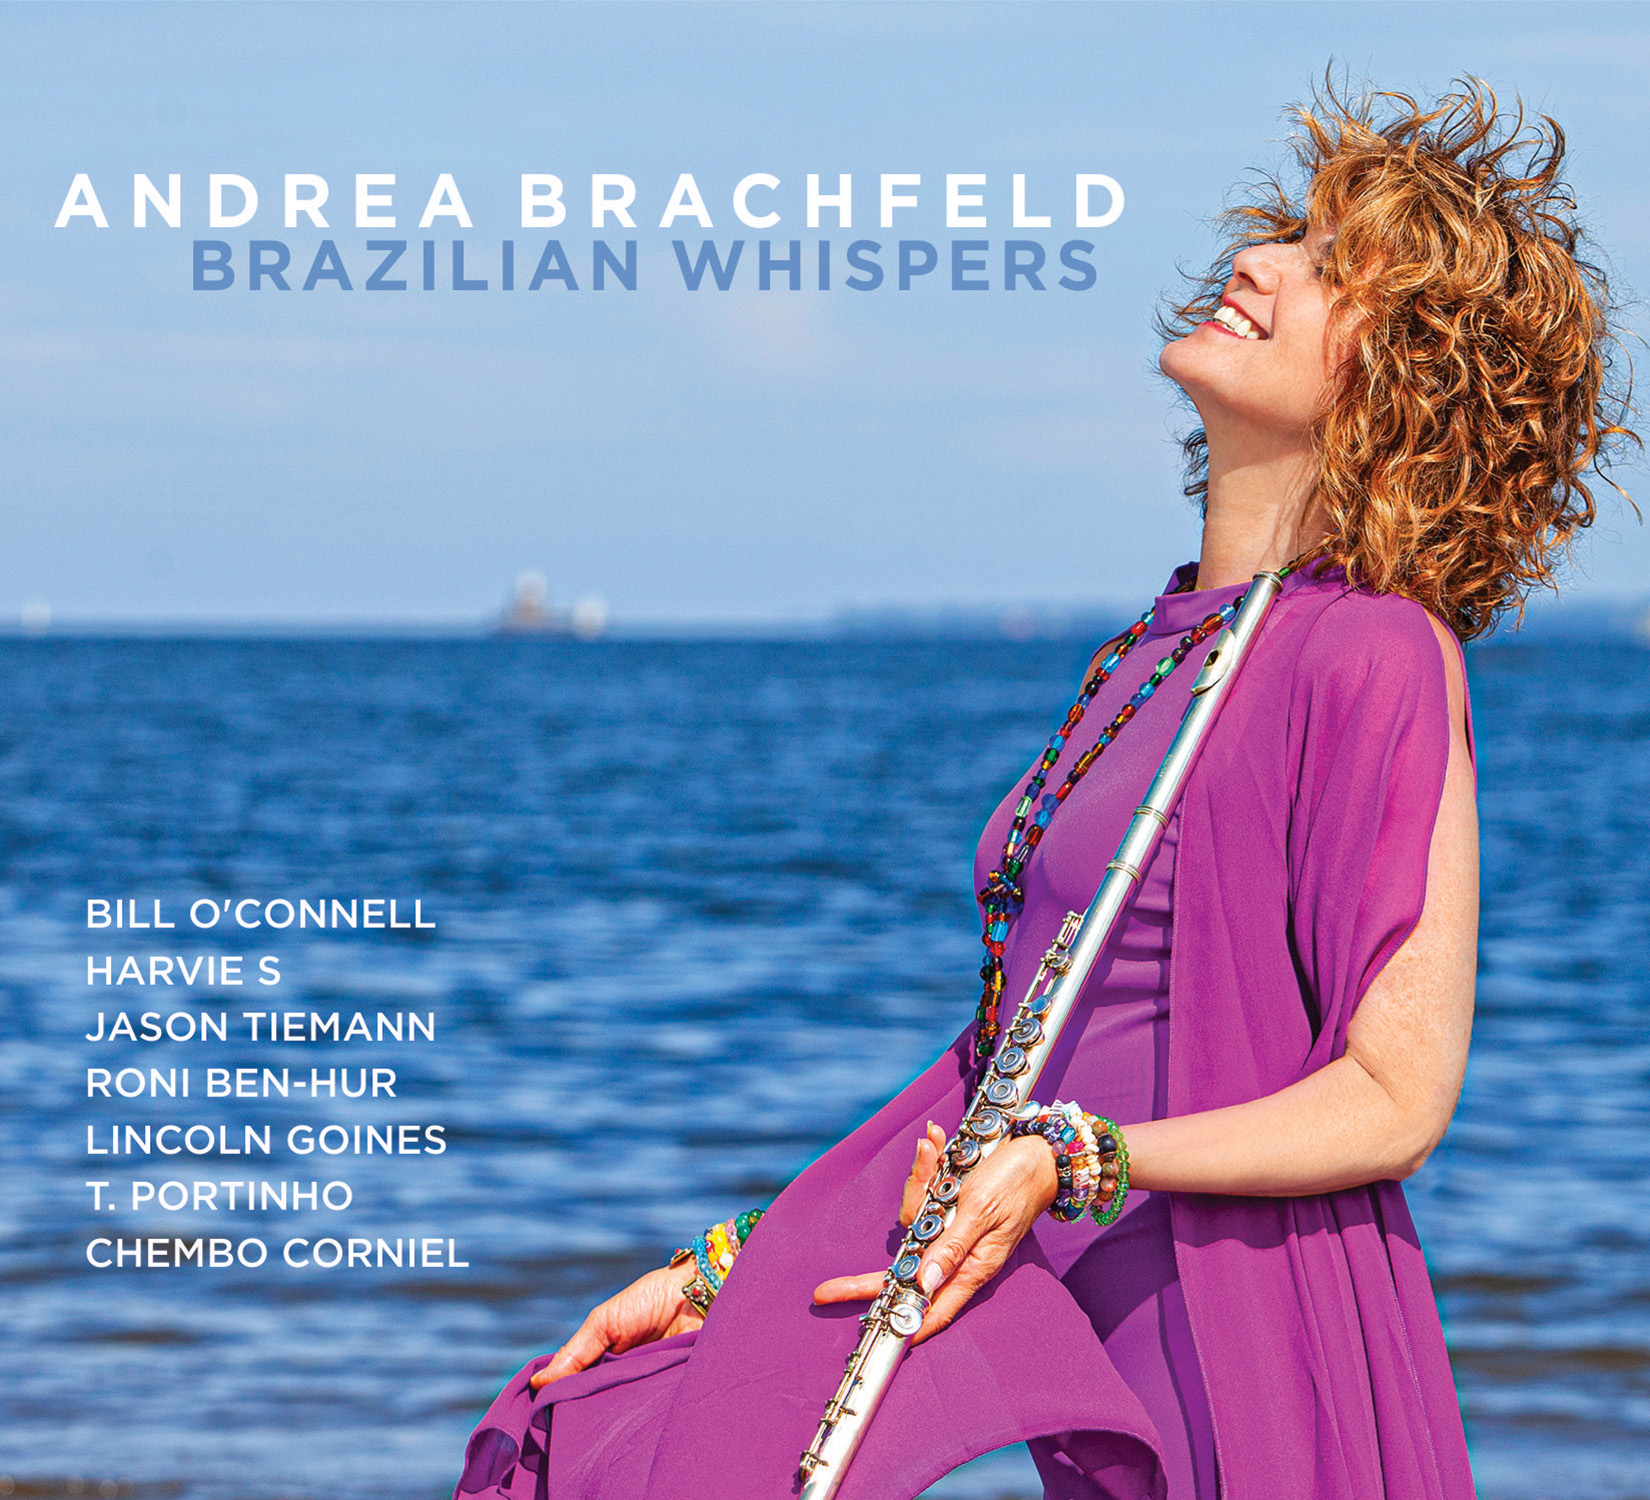 REVIEW: Andrea Brachfeld: Brazilian Whispers in JazzTimes